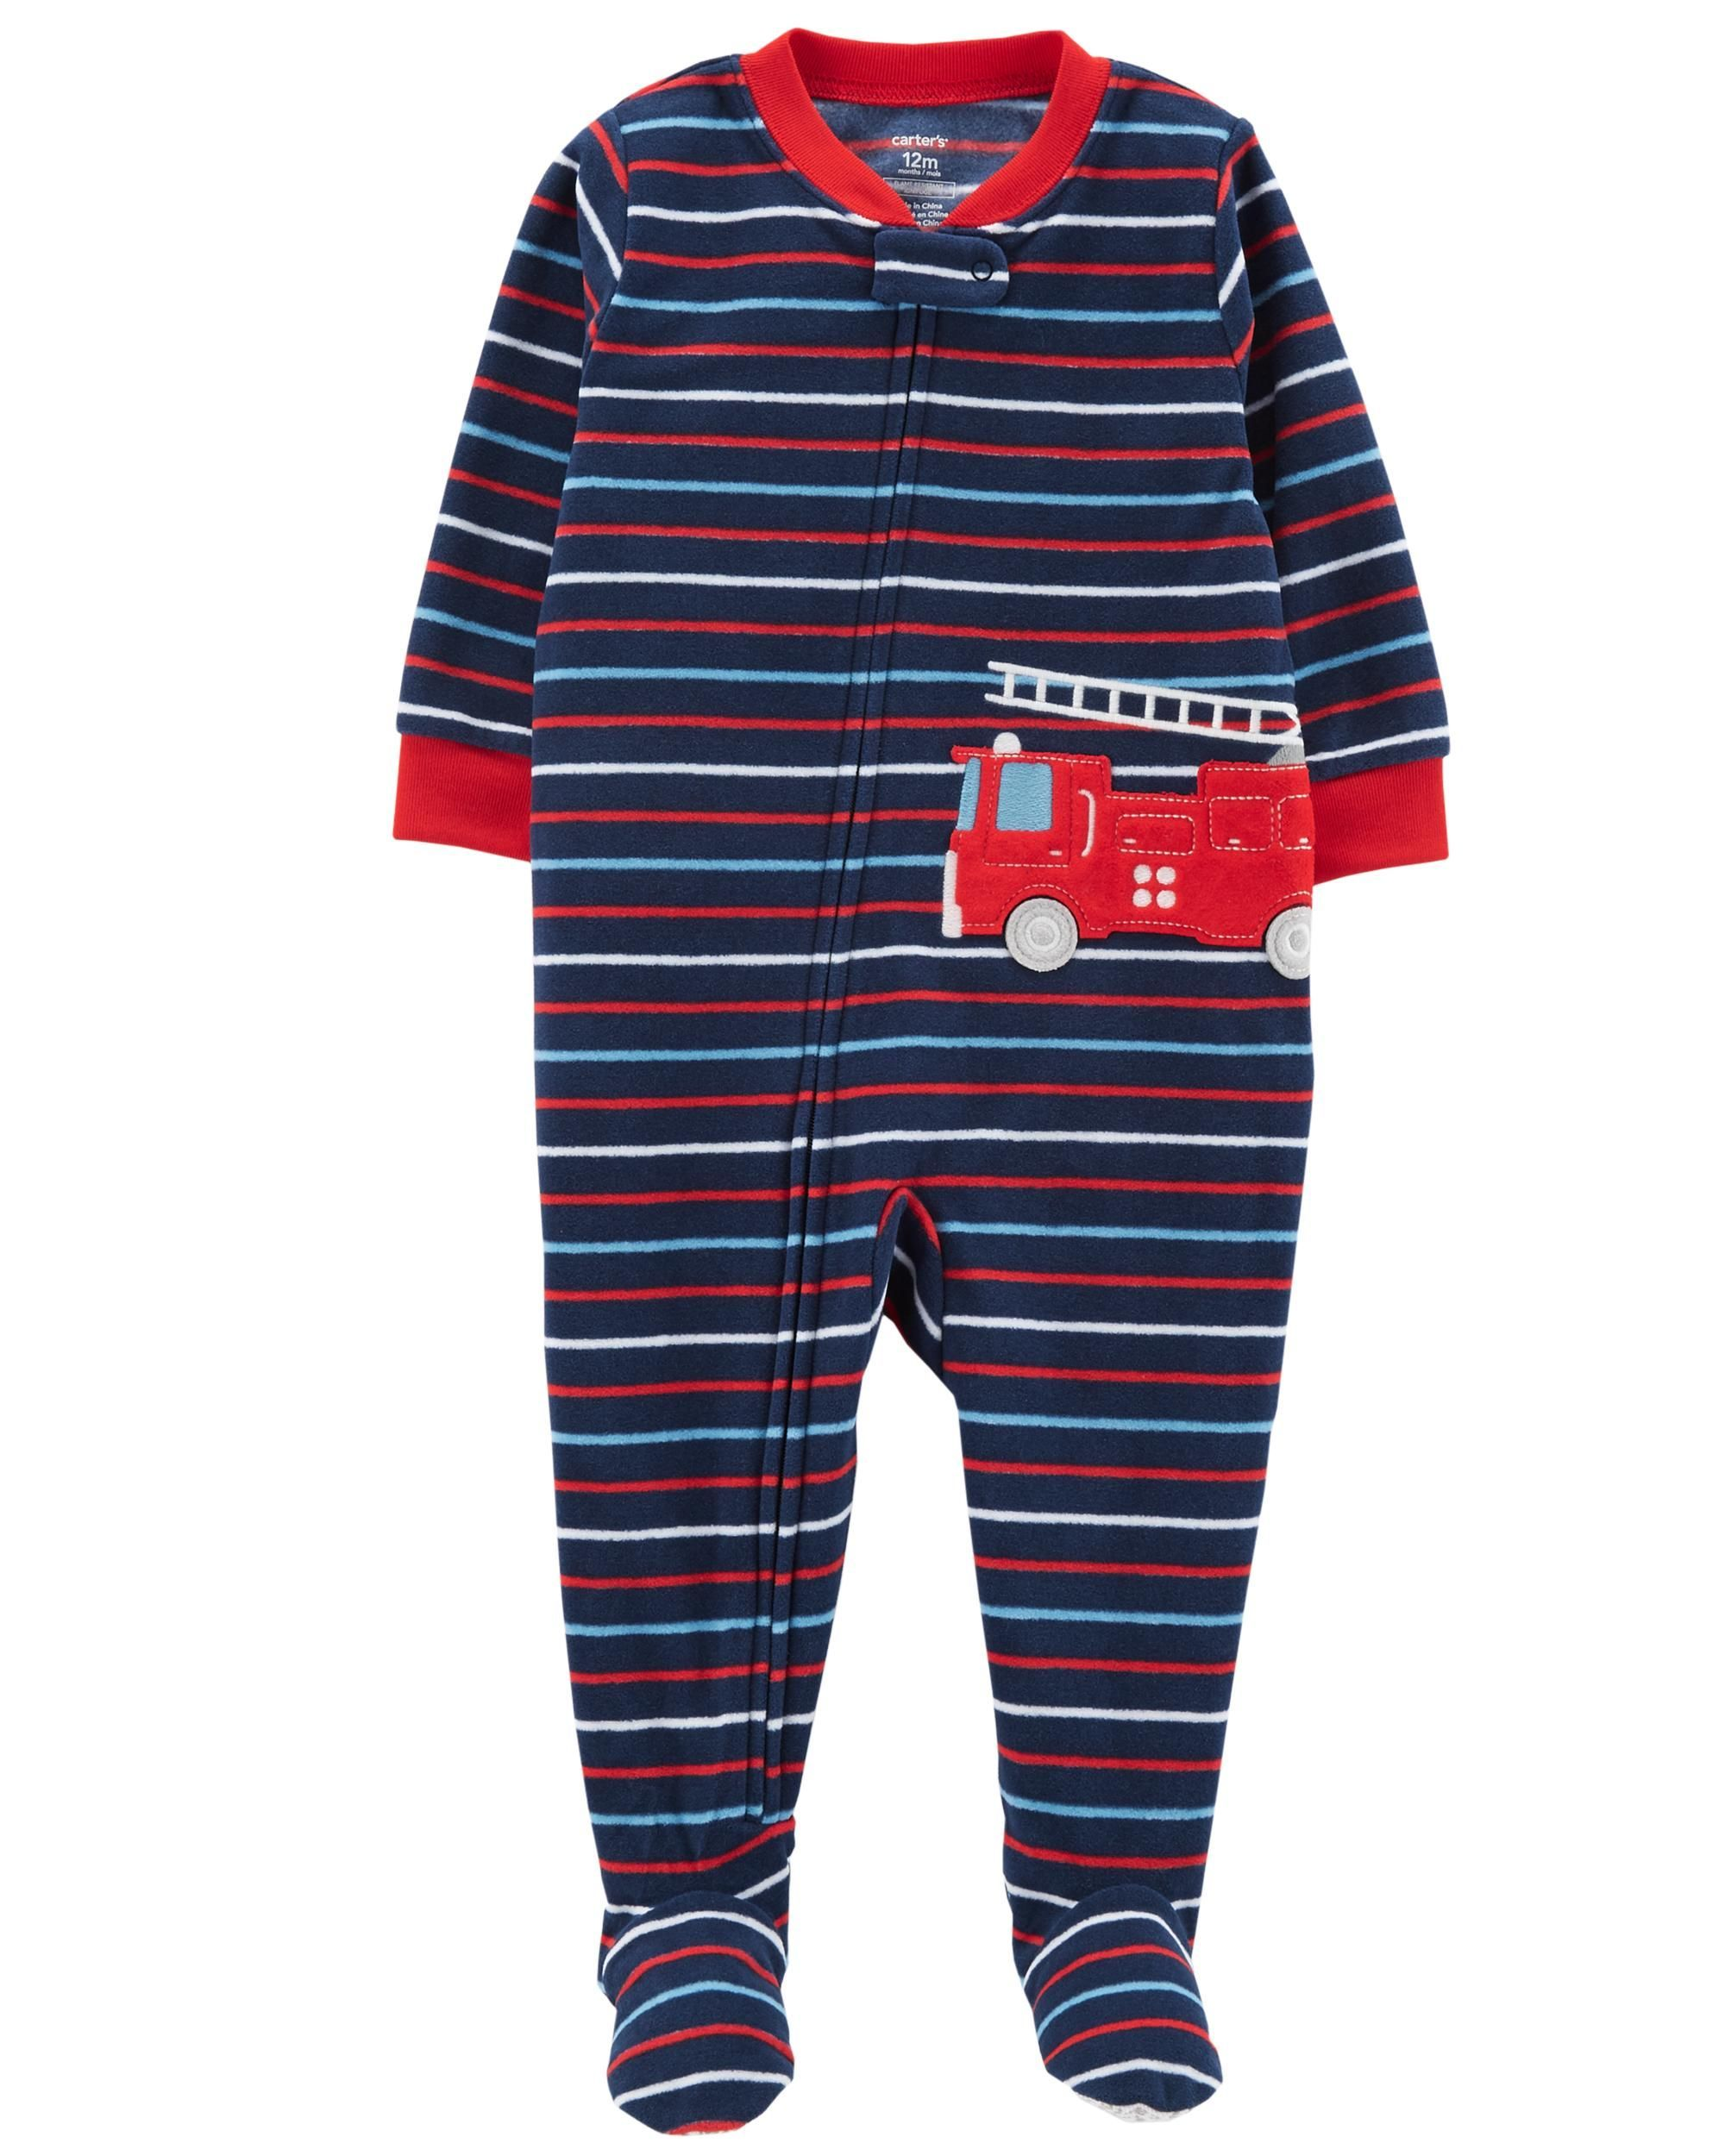 c10ac4421 Crafted in cozy fleece, this 1-piece gets him ready for bed with one easy  zip! Carter's polyester is flame resistant without any chemical treatment.